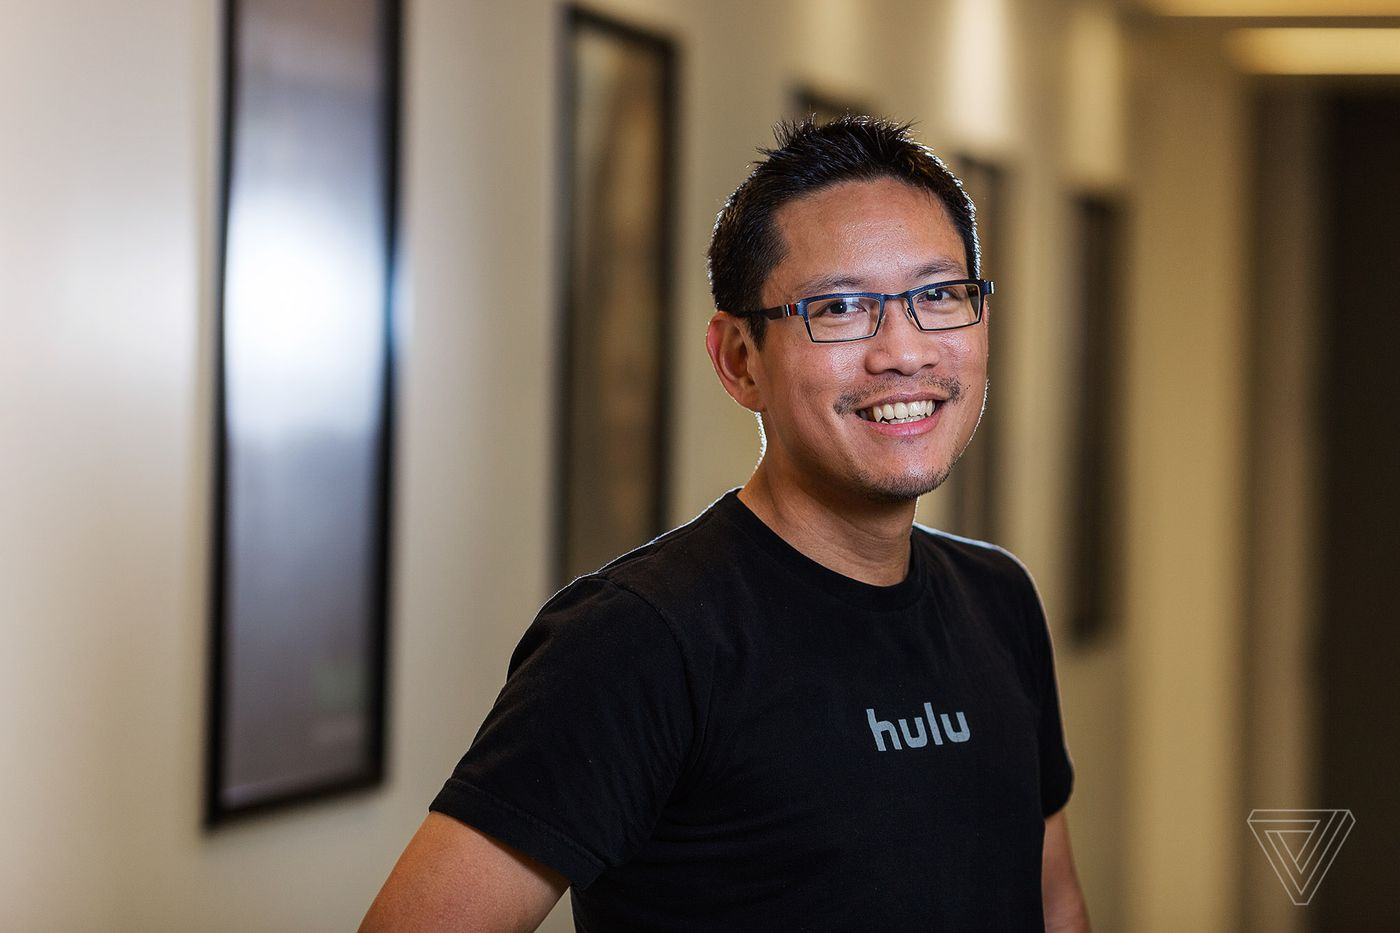 How Hulu reinvented itself for live TV - The Verge